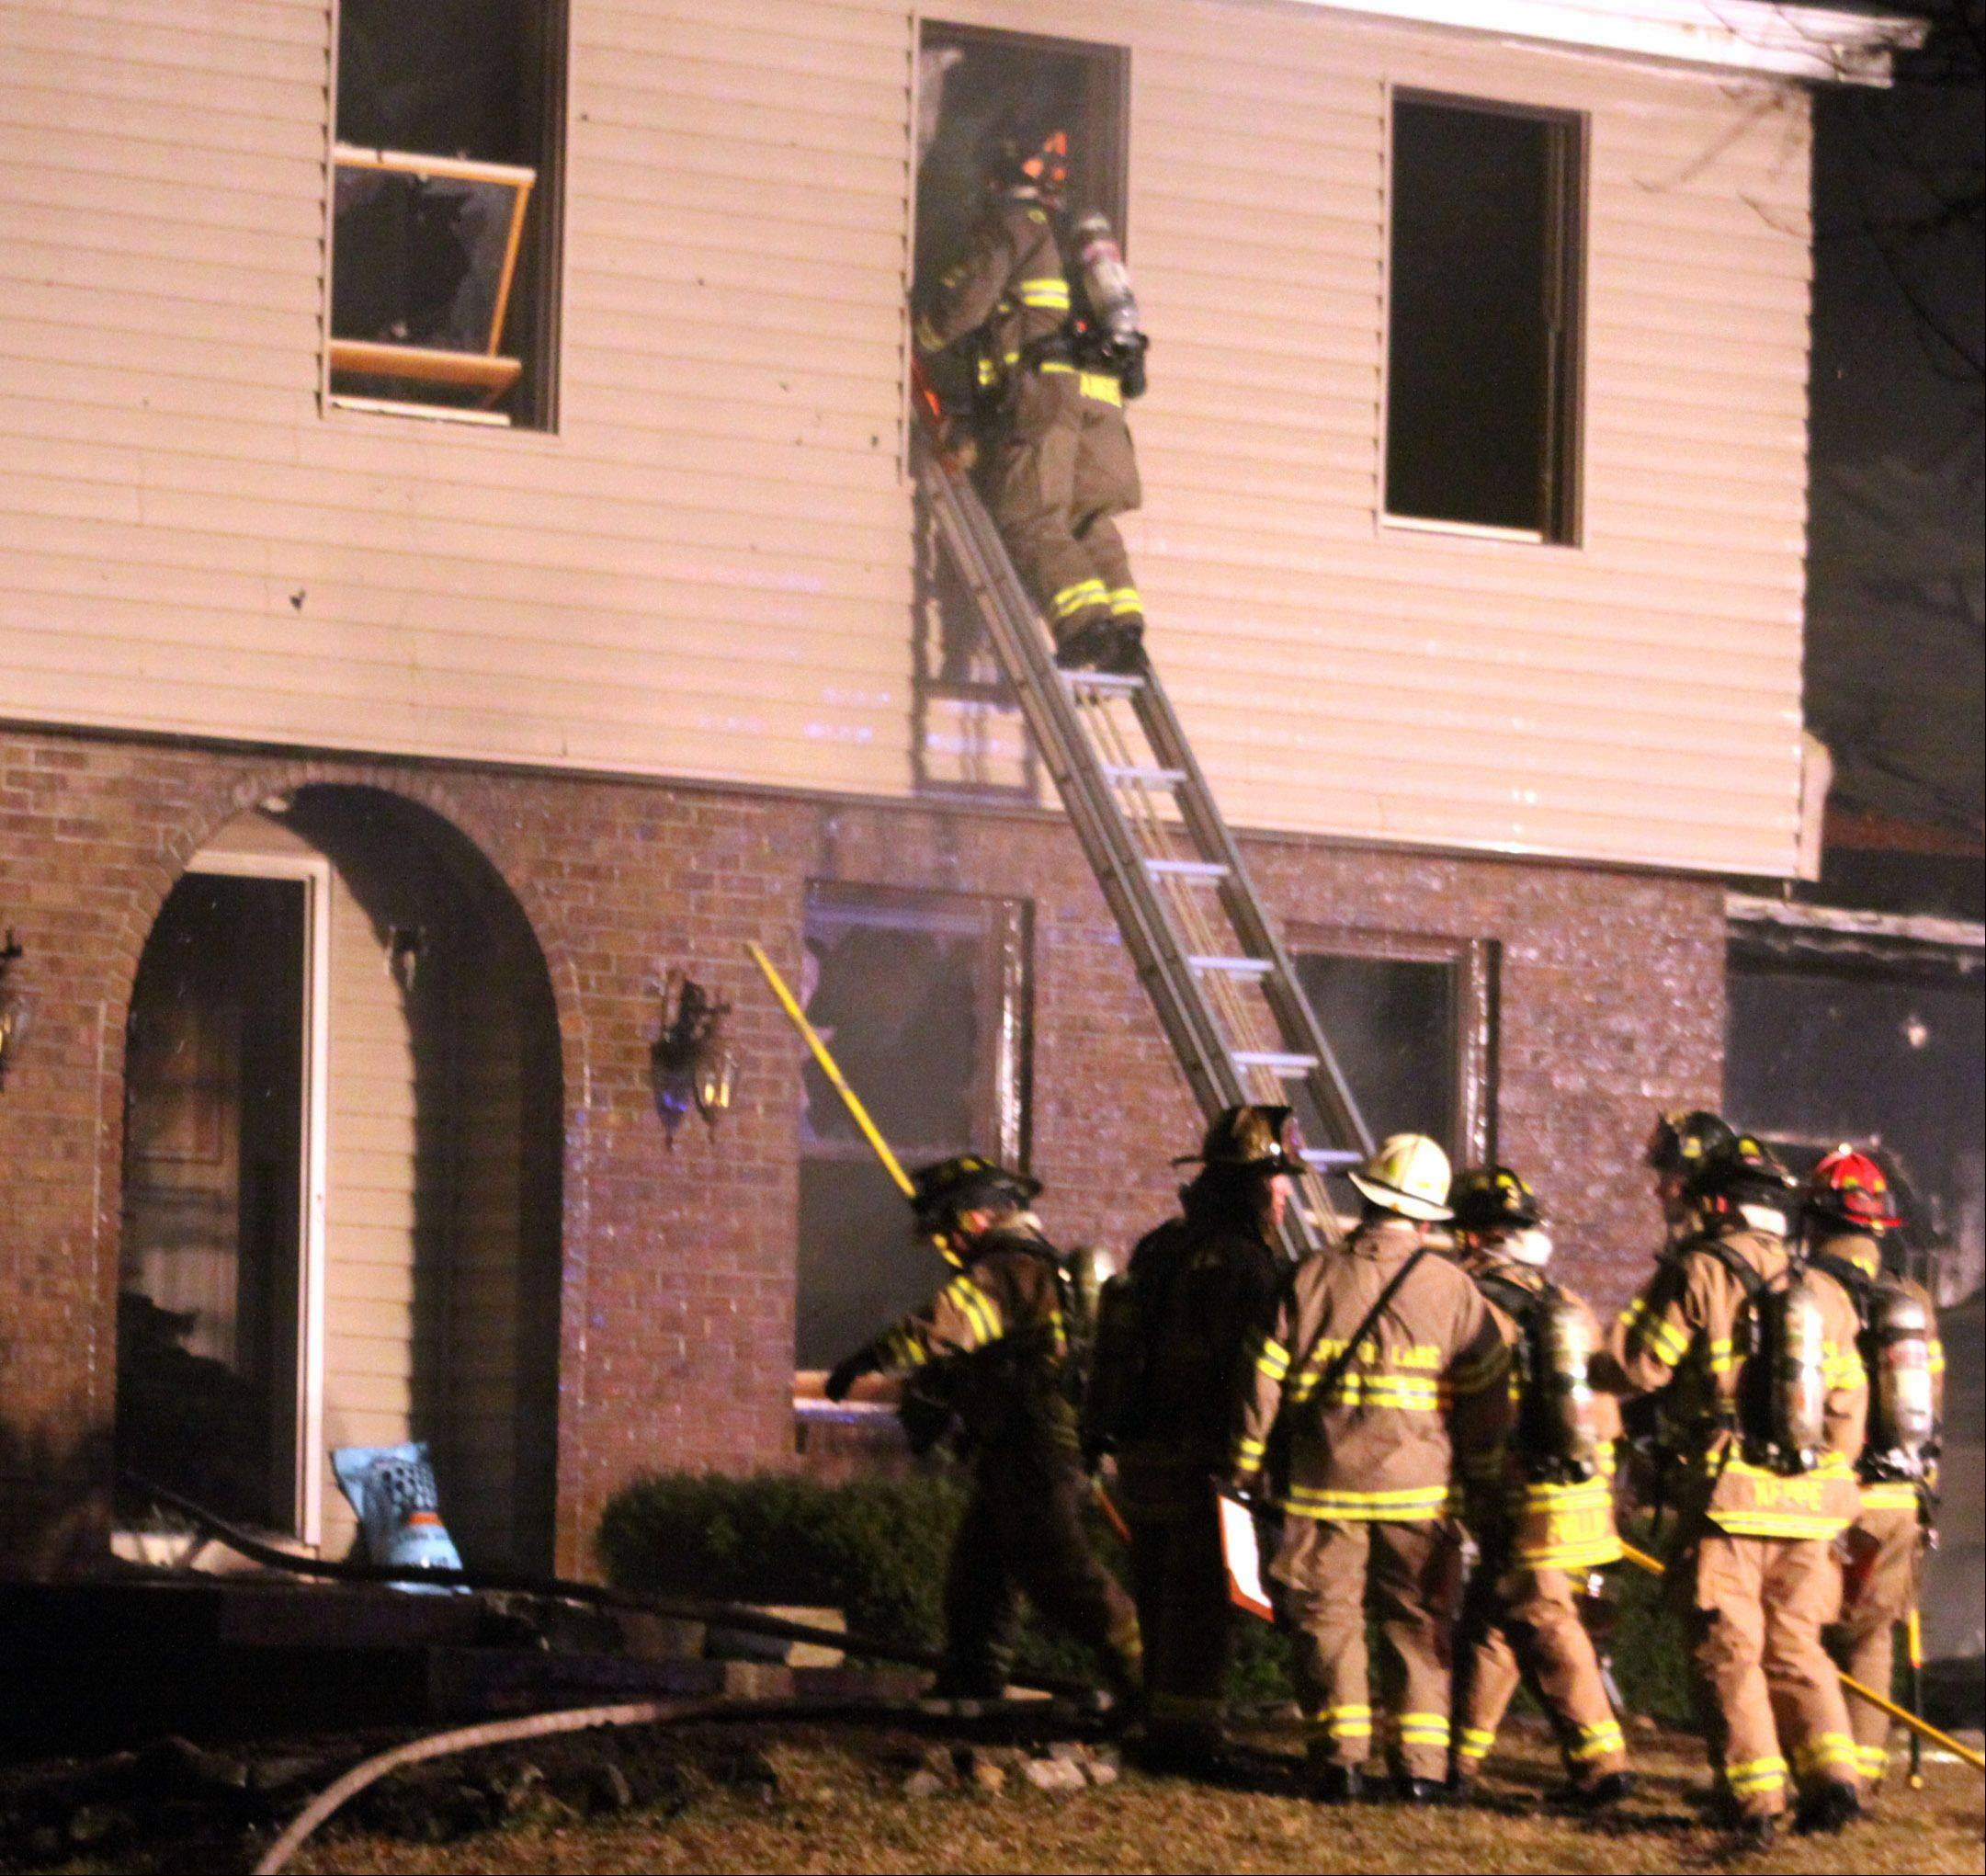 Firefighters had to knock out numerous windows while battling a house fire Monday in Algonquin.